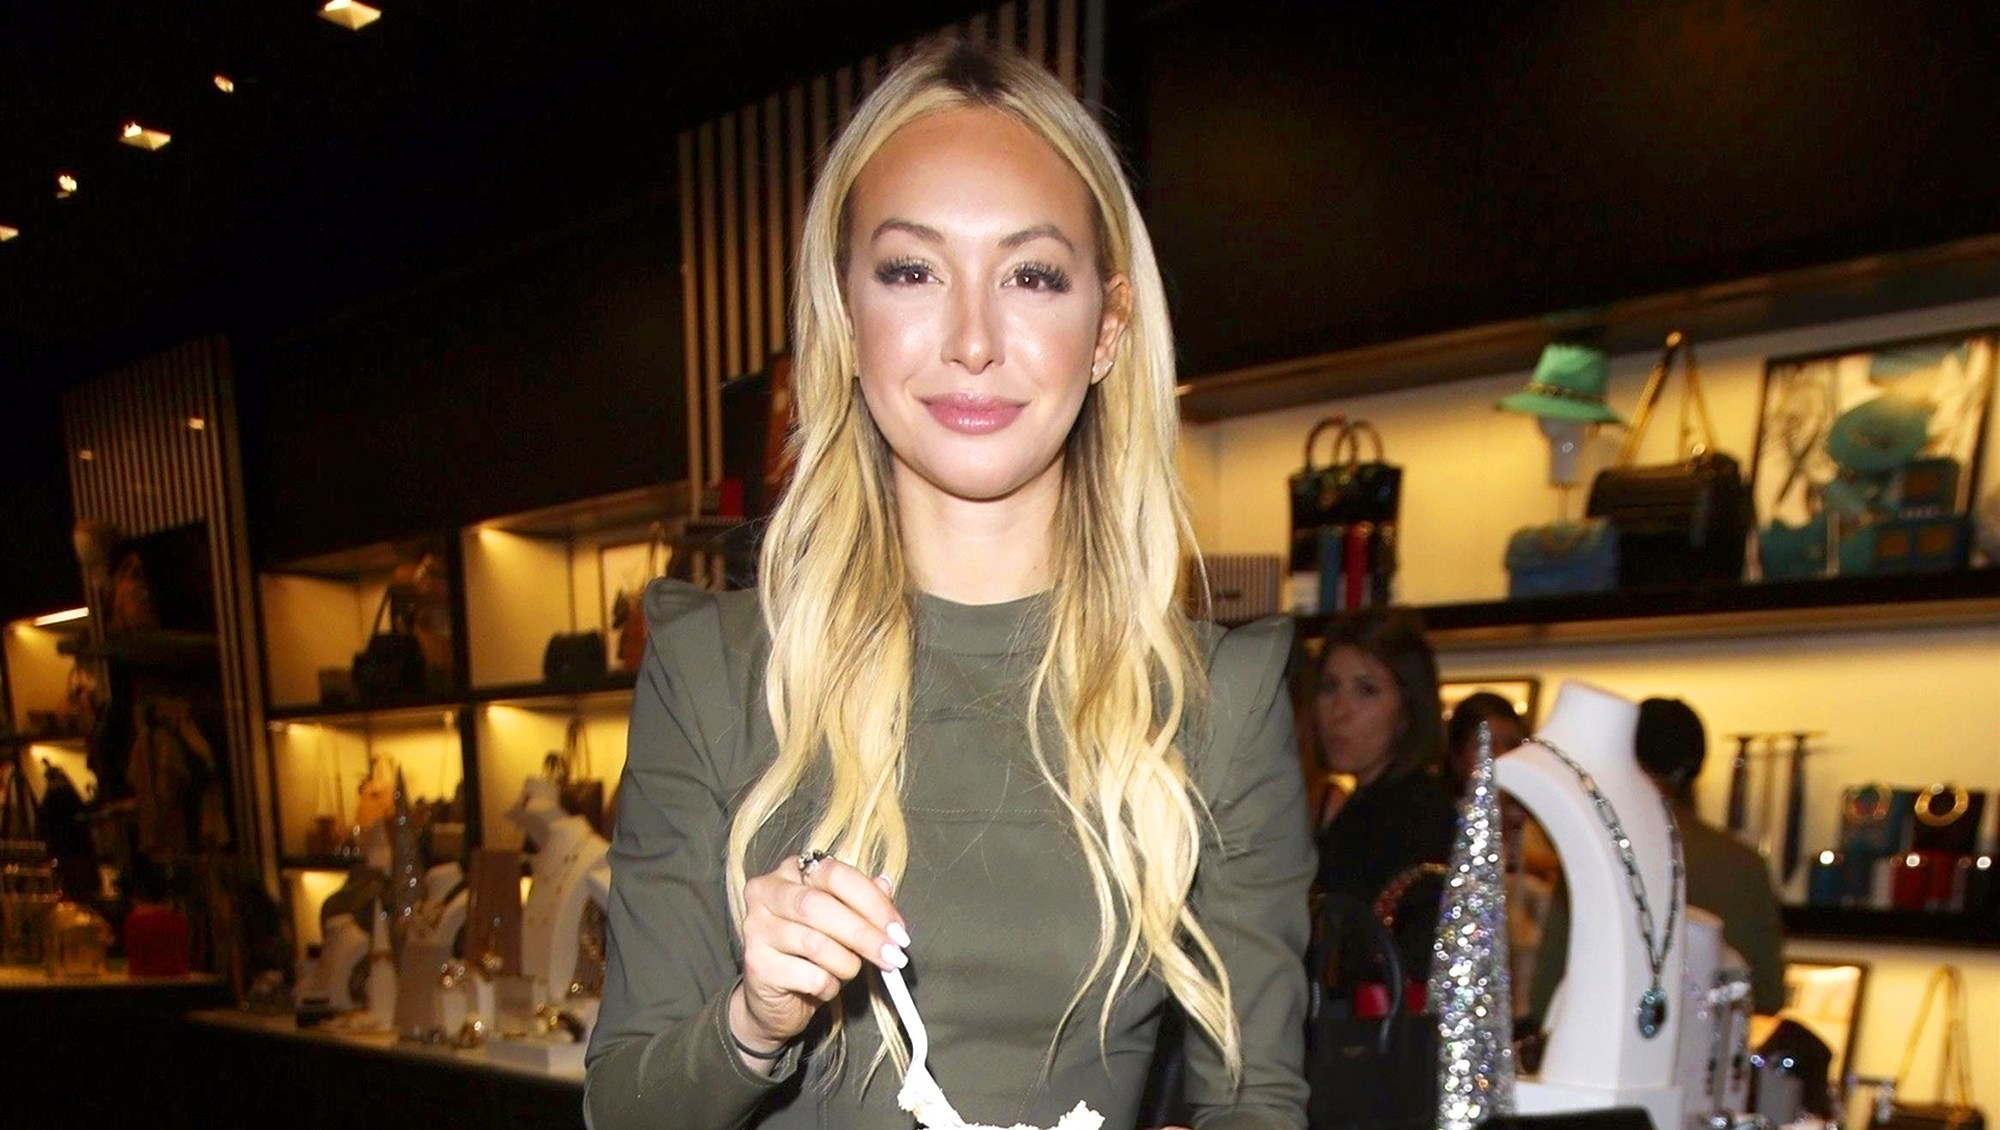 Corinne Olympios celebrates her birthday at the Henri Bendel store on November 9, 2017 in Beverly Hills, California.